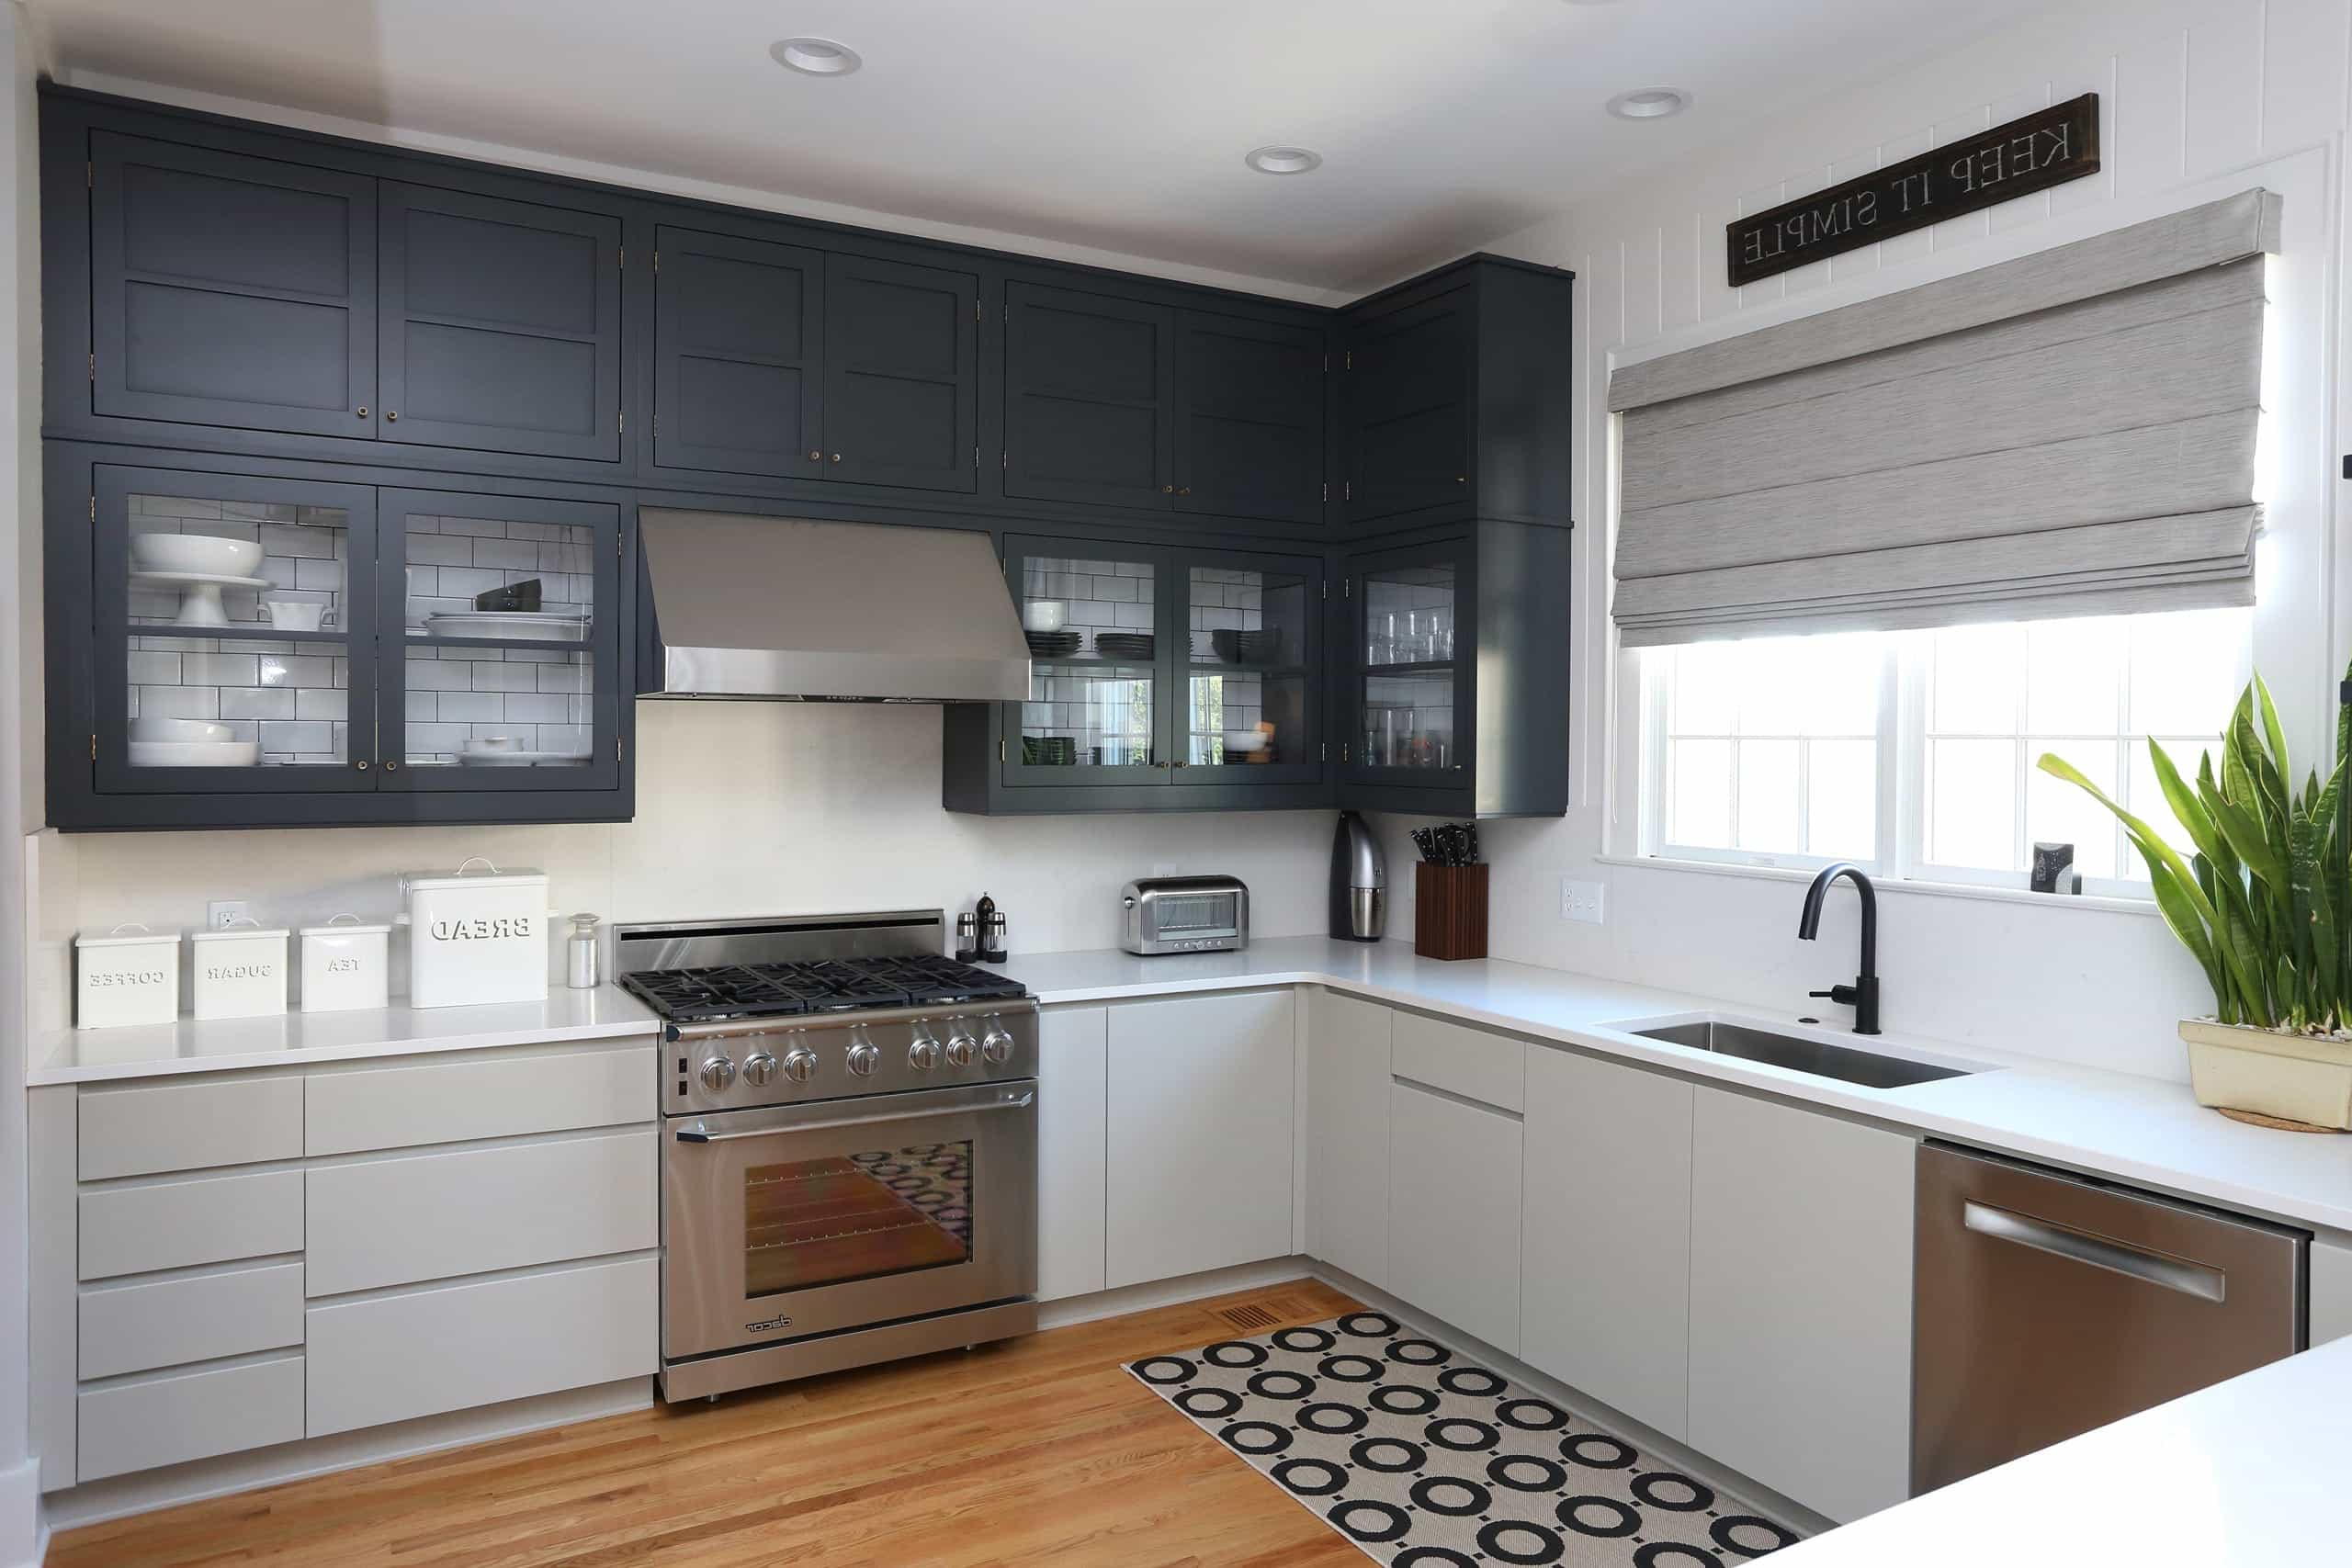 Dark Grey Two Toned Cabinets In Modern Industiral Kitchen (Photo 25 of 26)